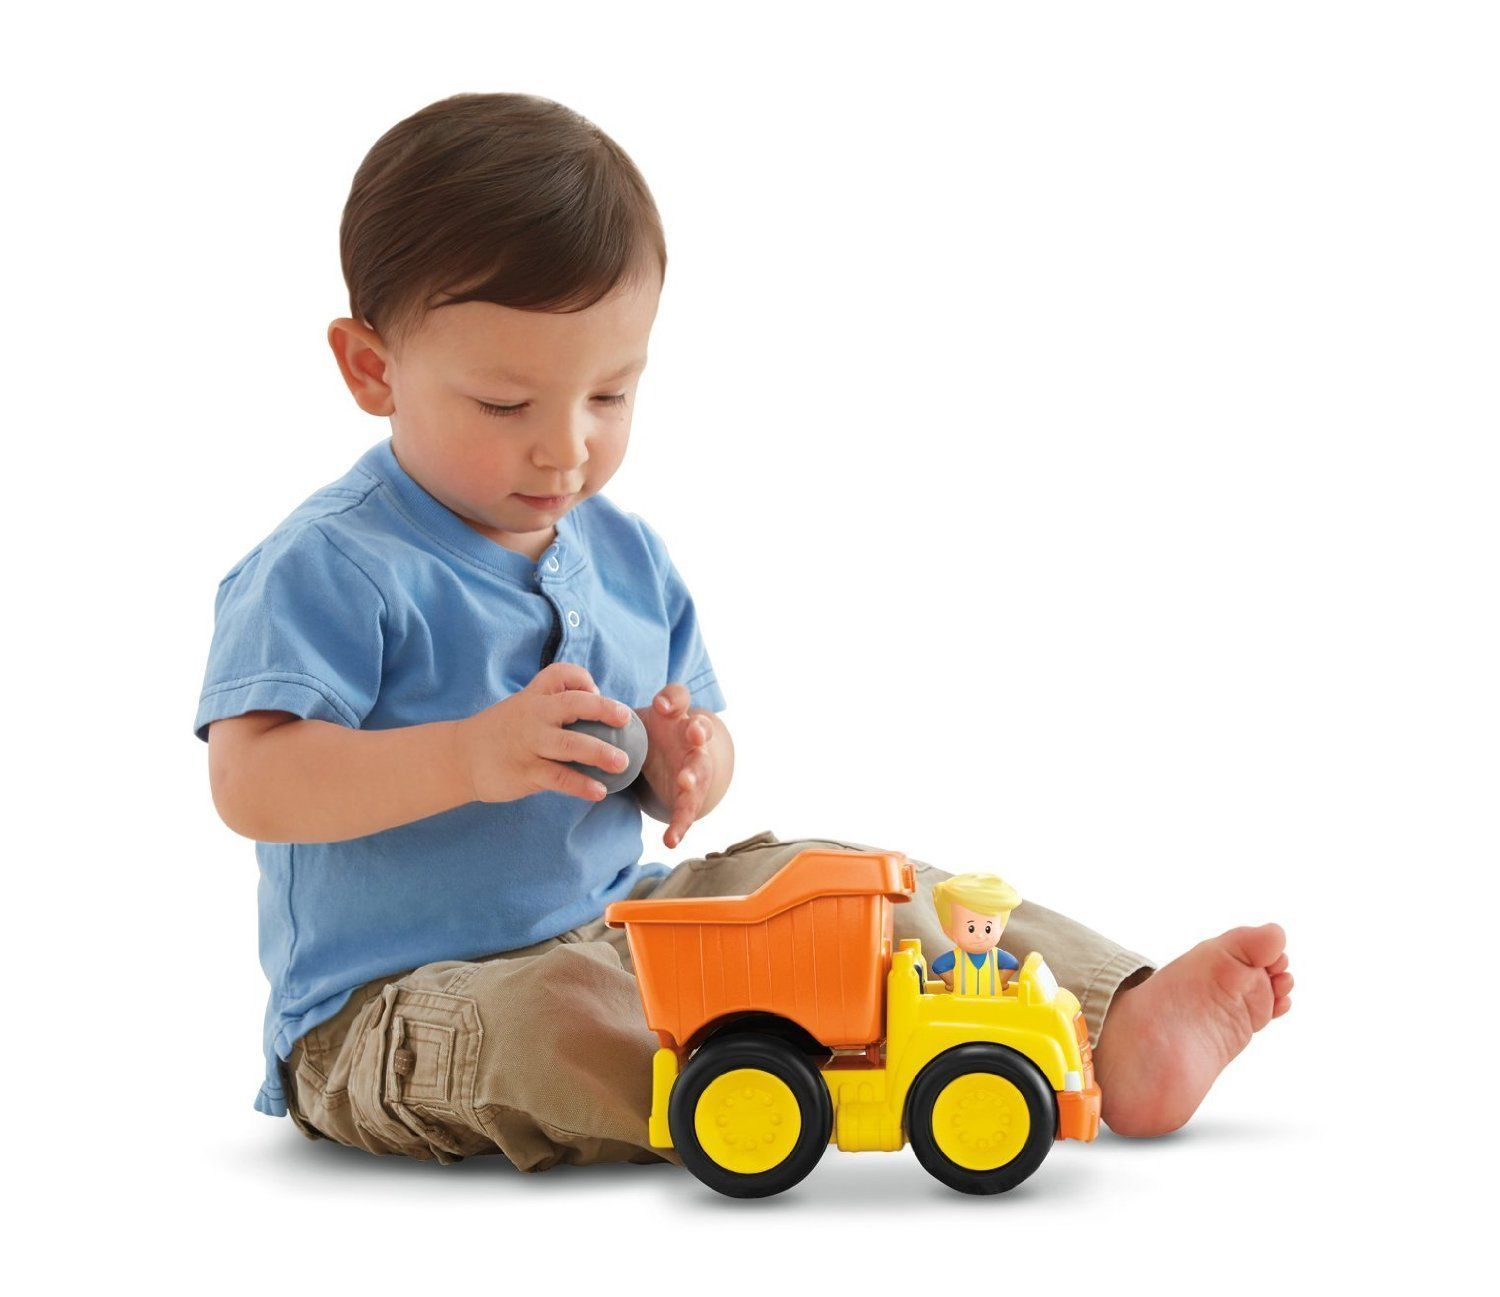 Fisher Price Little People Dump Truck - BDY81 - New image 7